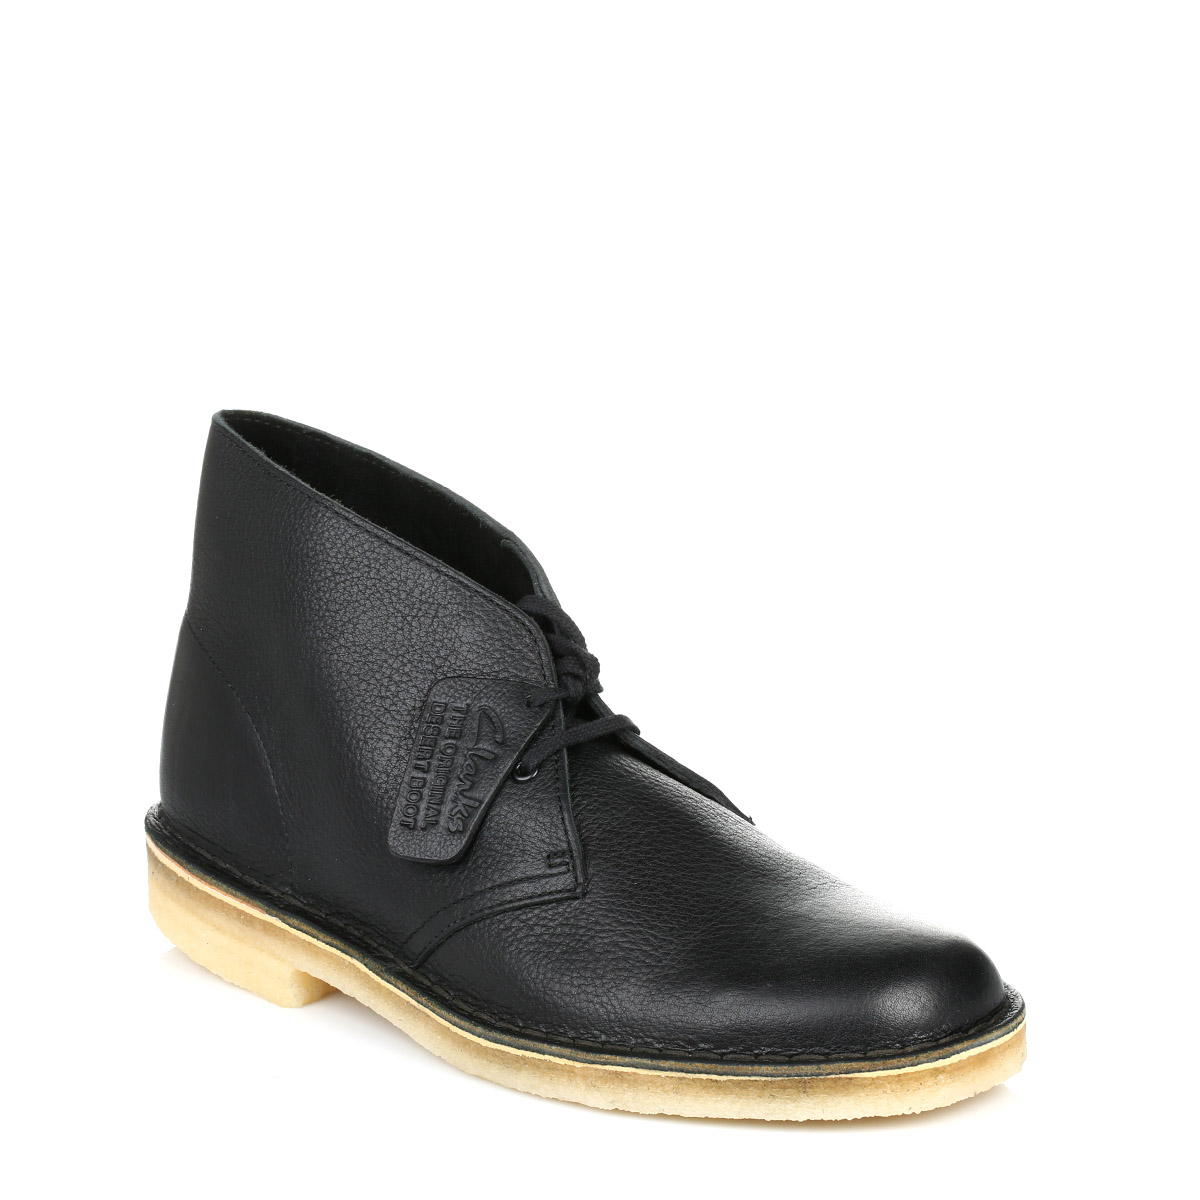 clarks mens black leather desert boots smart casual lace up shoes ebay. Black Bedroom Furniture Sets. Home Design Ideas